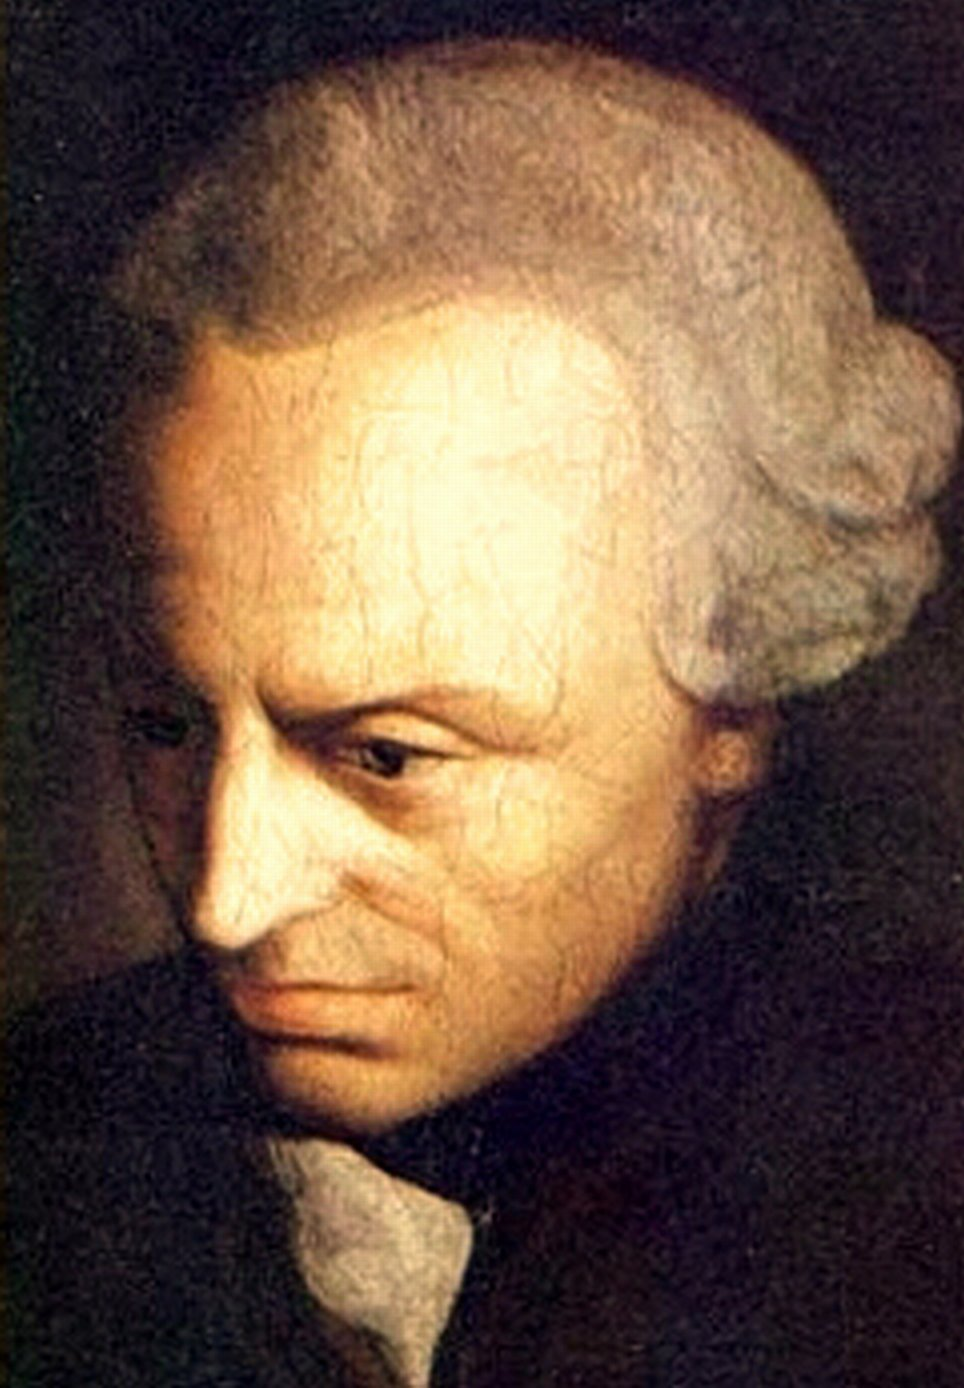 File:Immanuel Kant (painted portrait).jpg